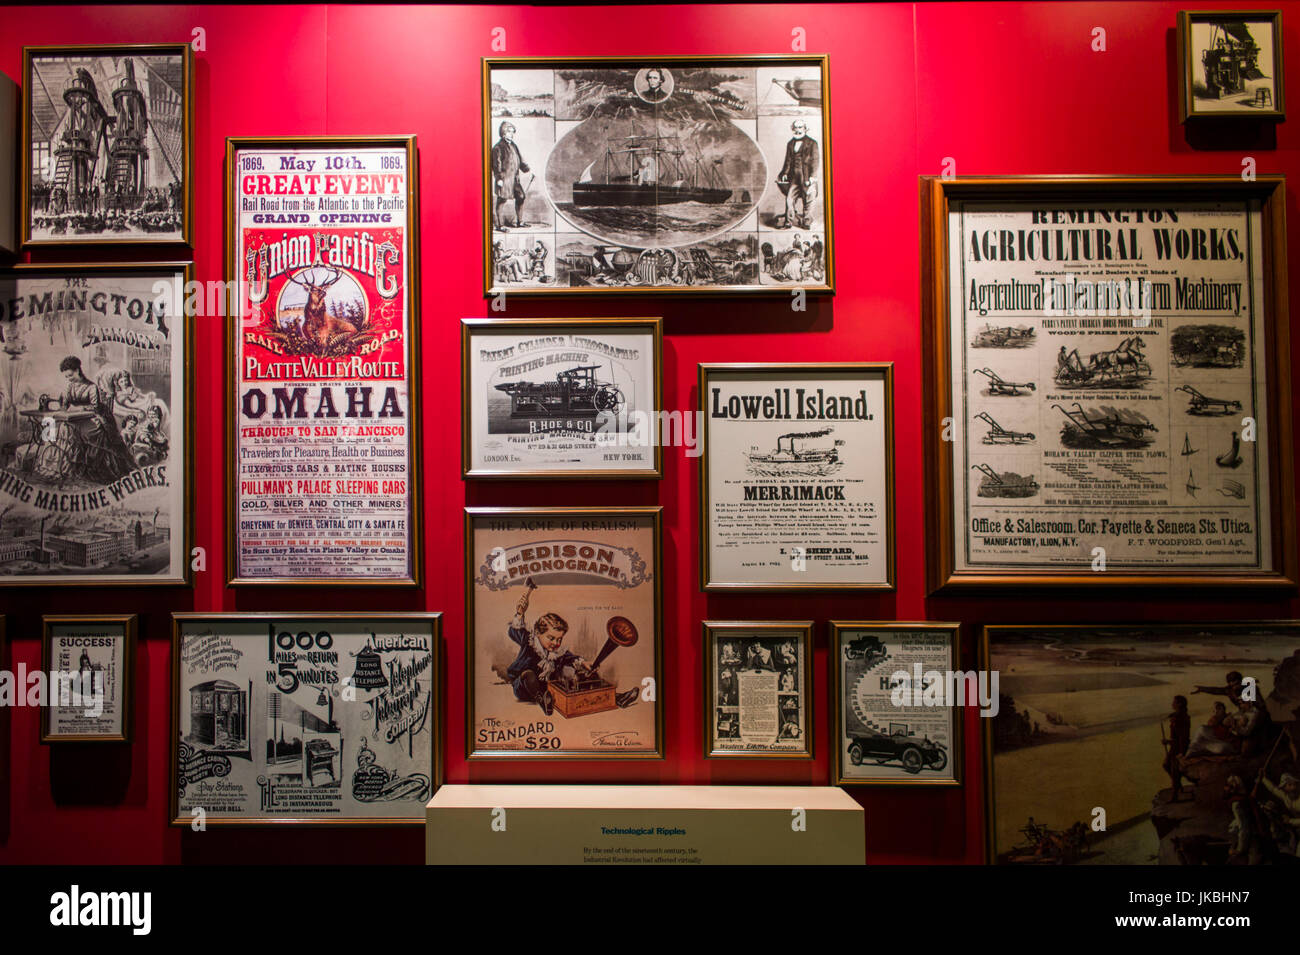 USA, Massachusetts, Lowell, Lowell National Historic Park, Boott Cotton Mills Museum, exhibits on Lowell's history - Stock Image